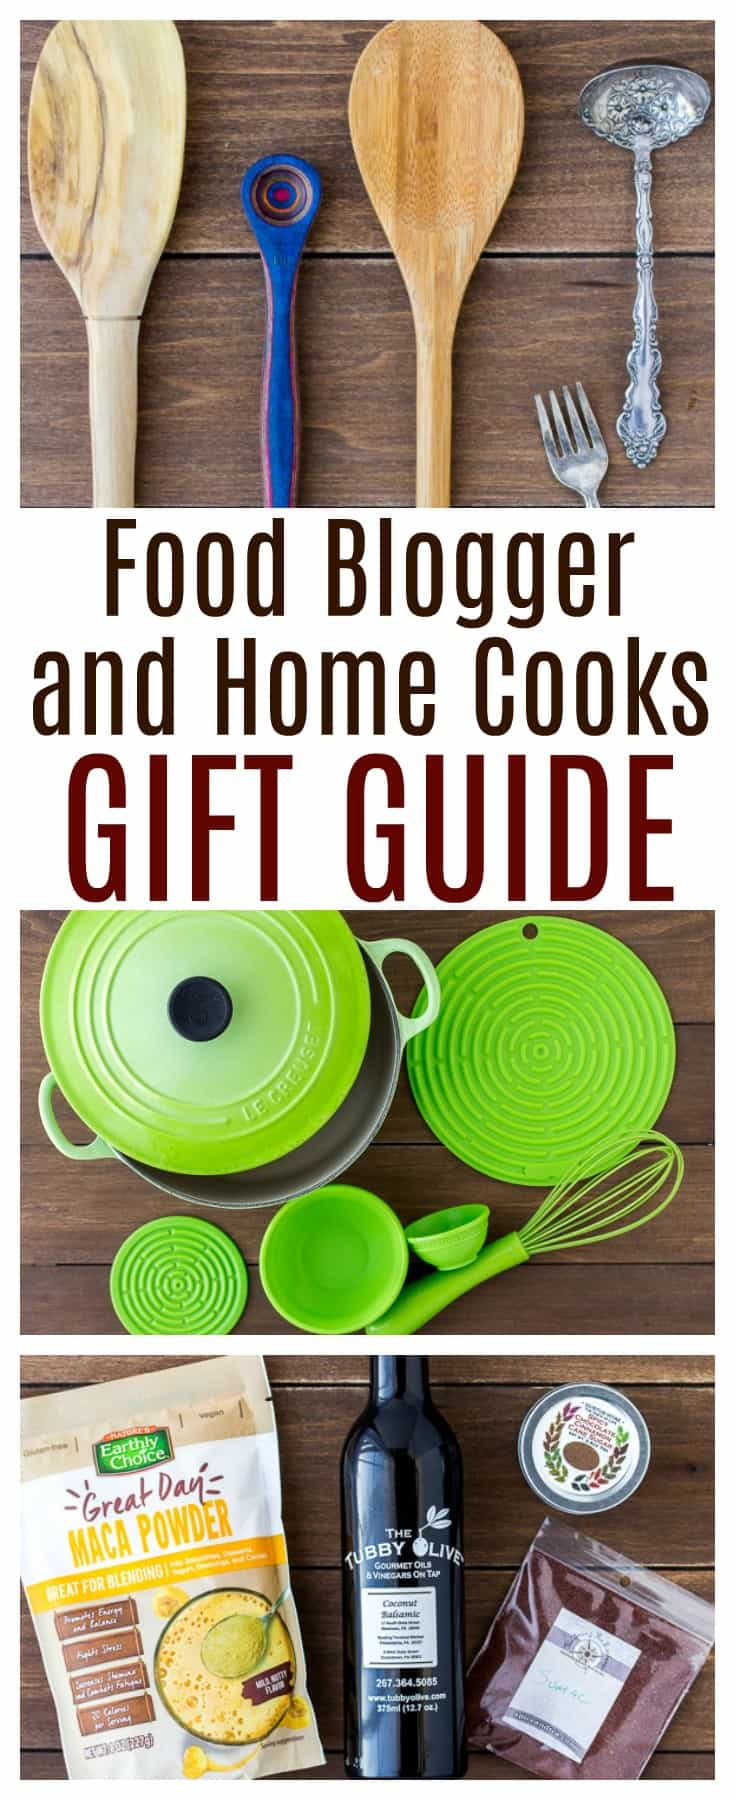 The Ultimate Food Blogger Gift Guide is perfect for home cooks as well. It contains everything you need to create delicious food and photography it beautifully as well! If you or someone you know loves cooking and baking, this gift list is full of great ideas! | #dlbrecipes #giftguide #cooking #baking #foodlover